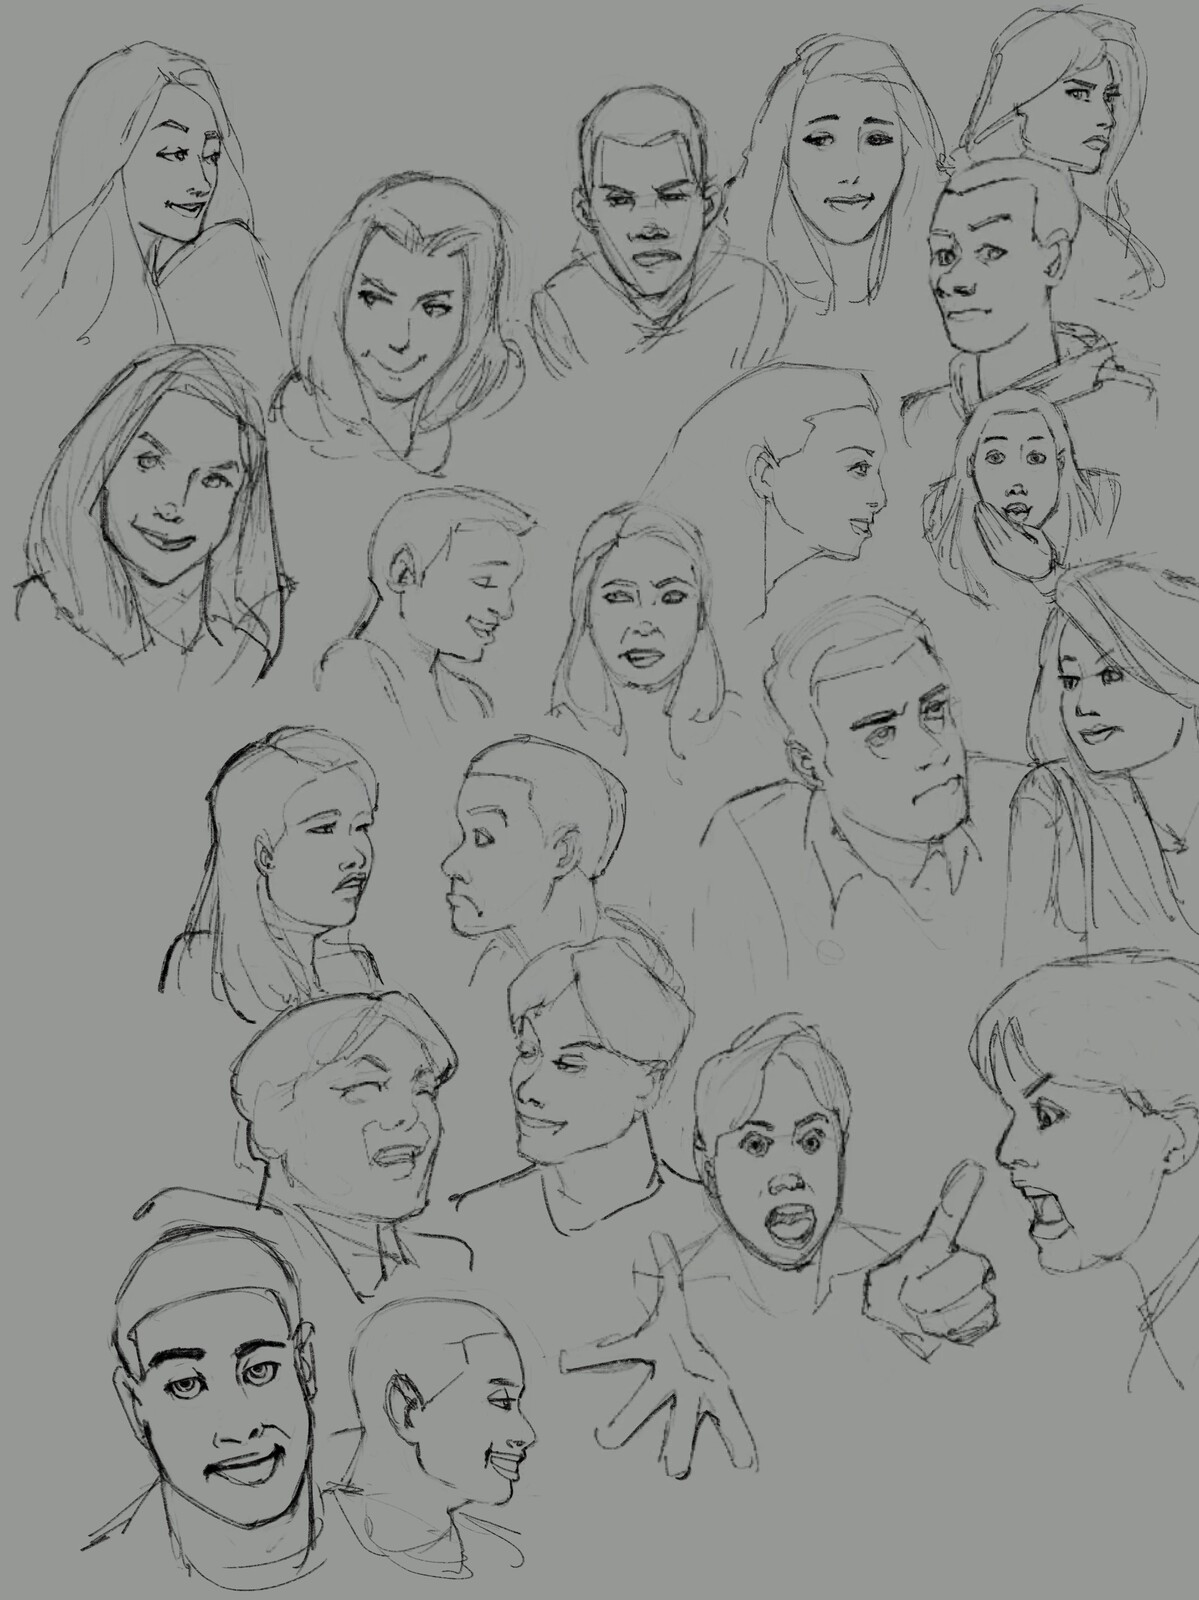 More expressions!